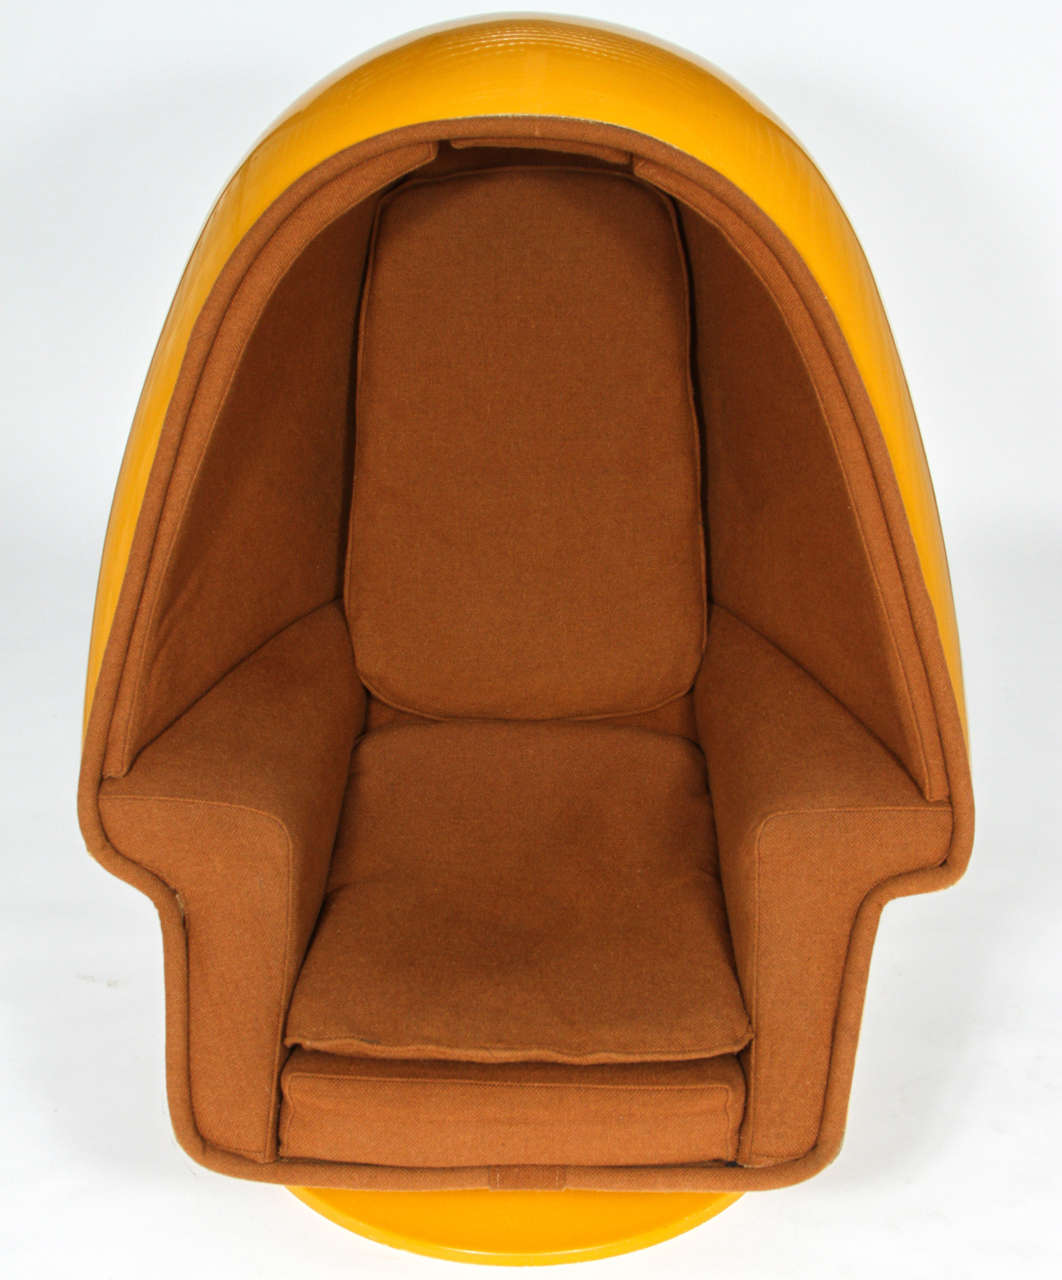 Alpha Egg Chair 1970 Vintage Lee West Alpha Chamber Egg Pod Stereo Chair